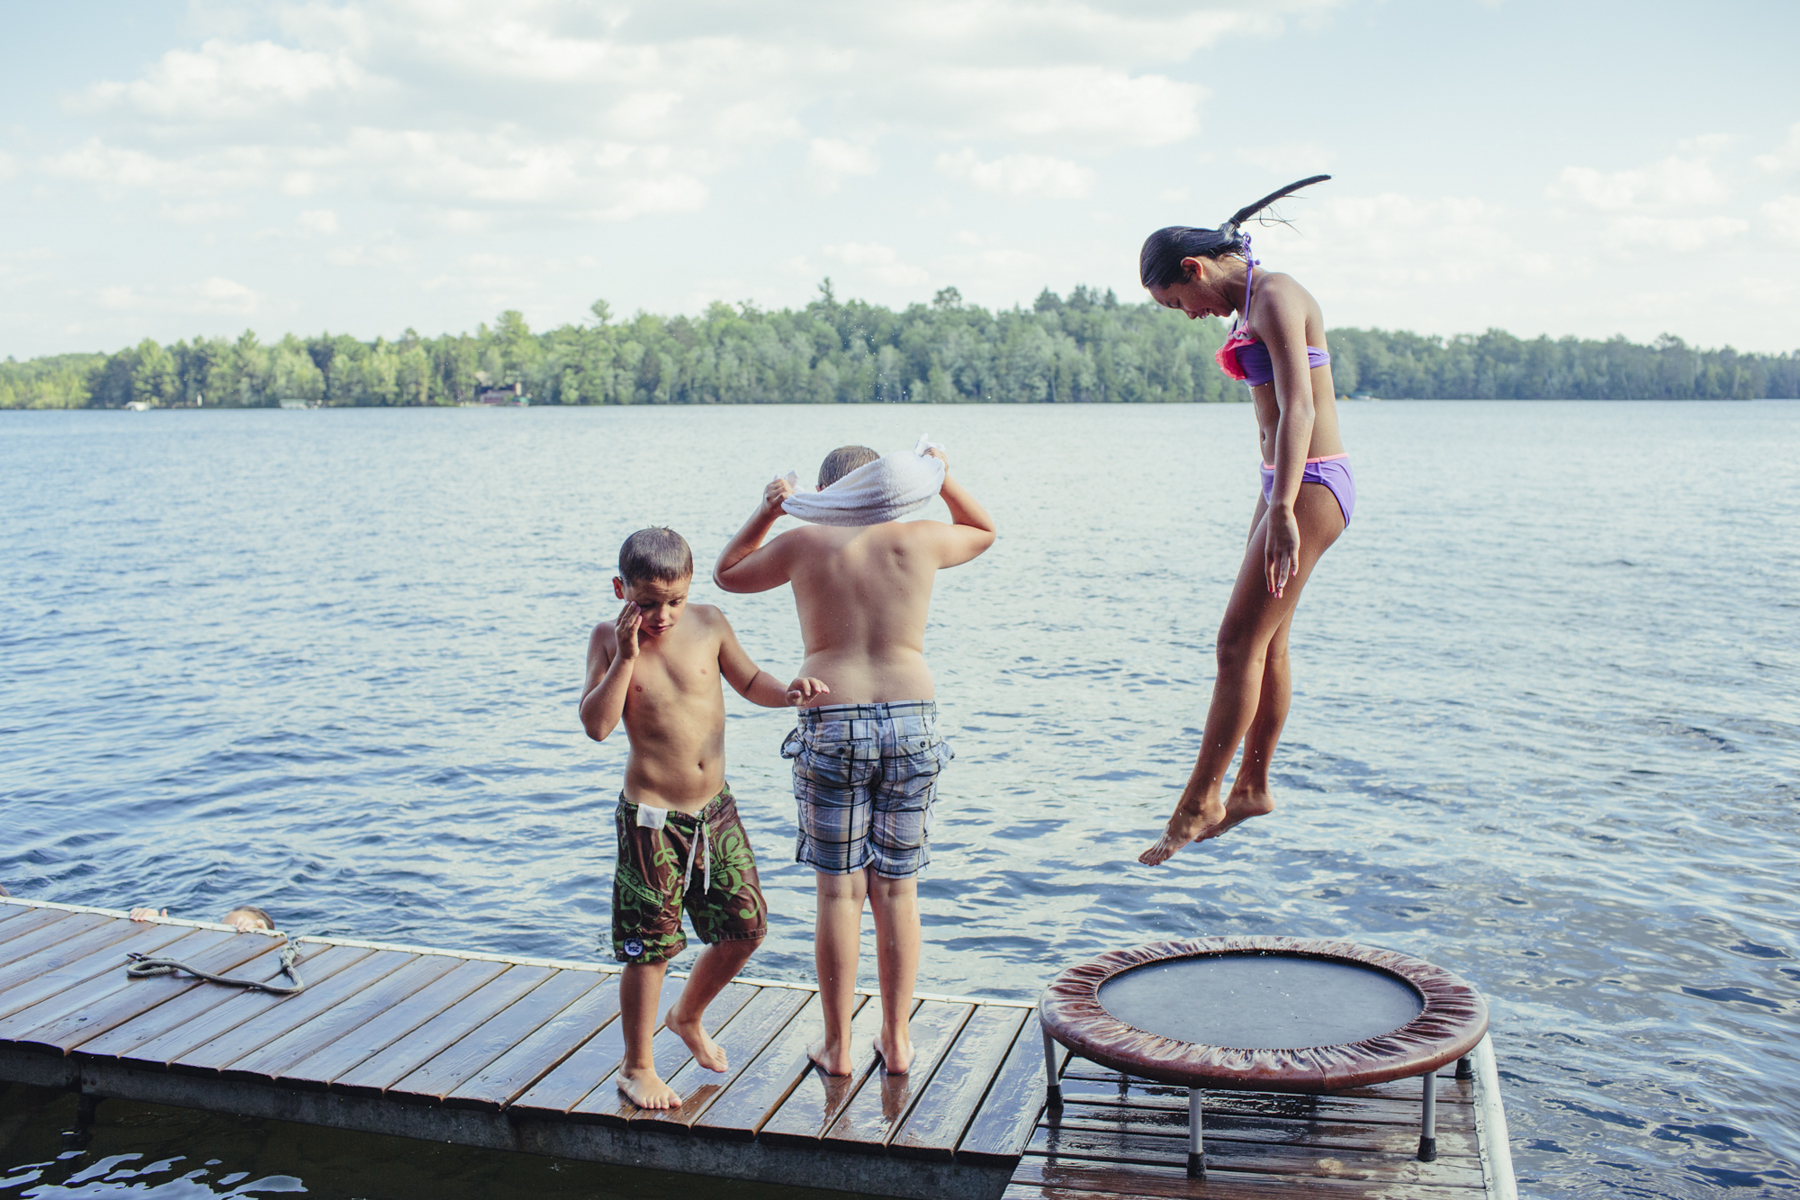 Girl Jumping on Trampoline into a Lake